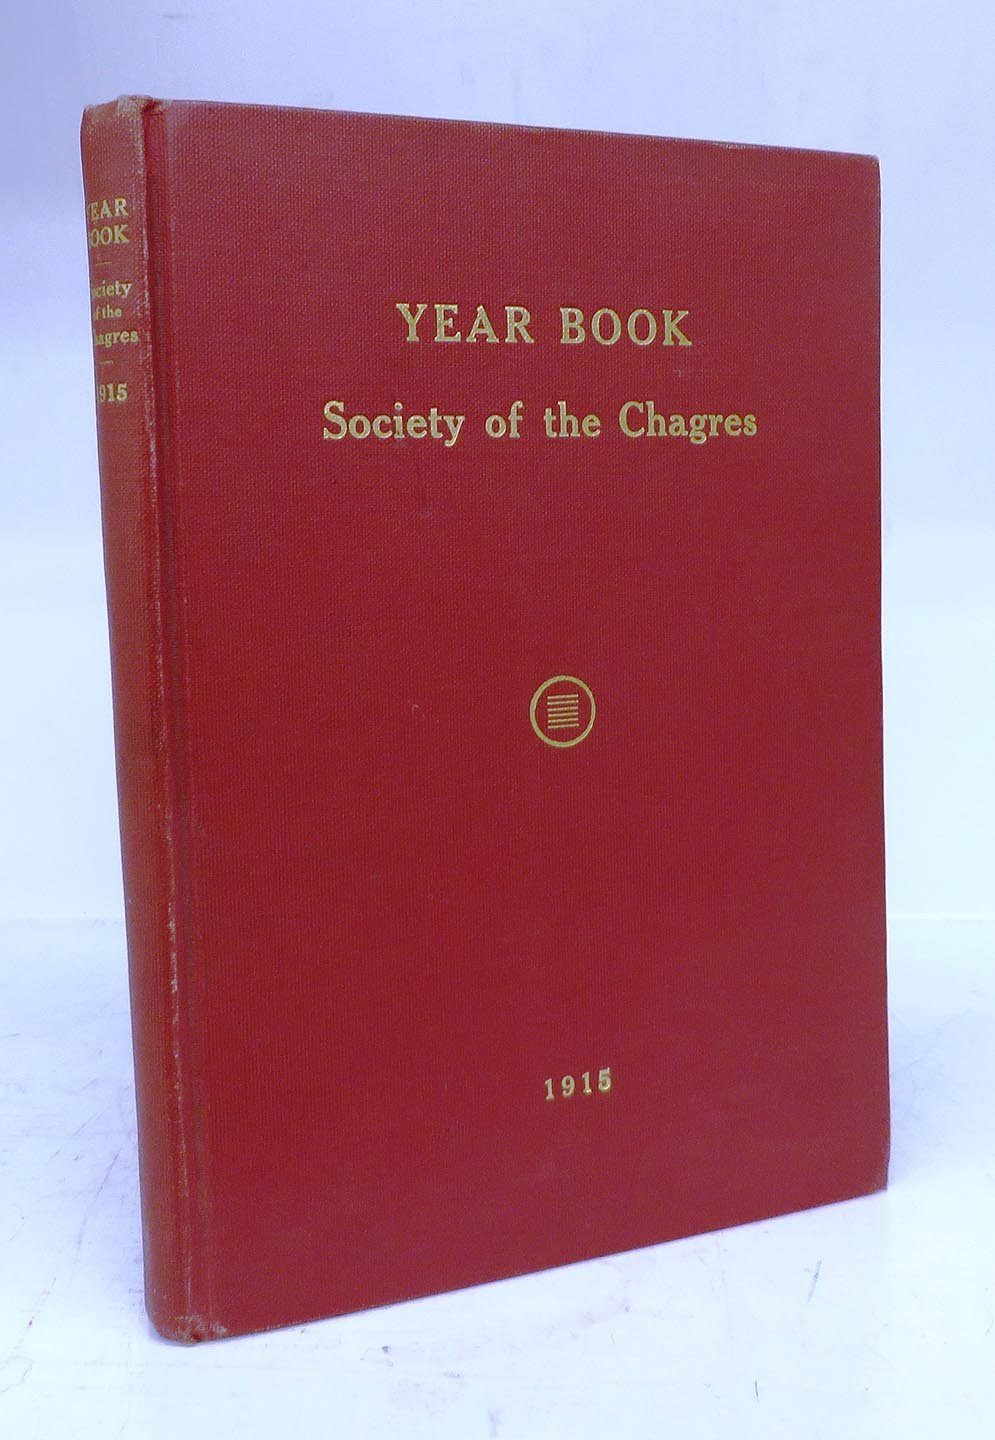 Society of the Chagres Year Book 1915